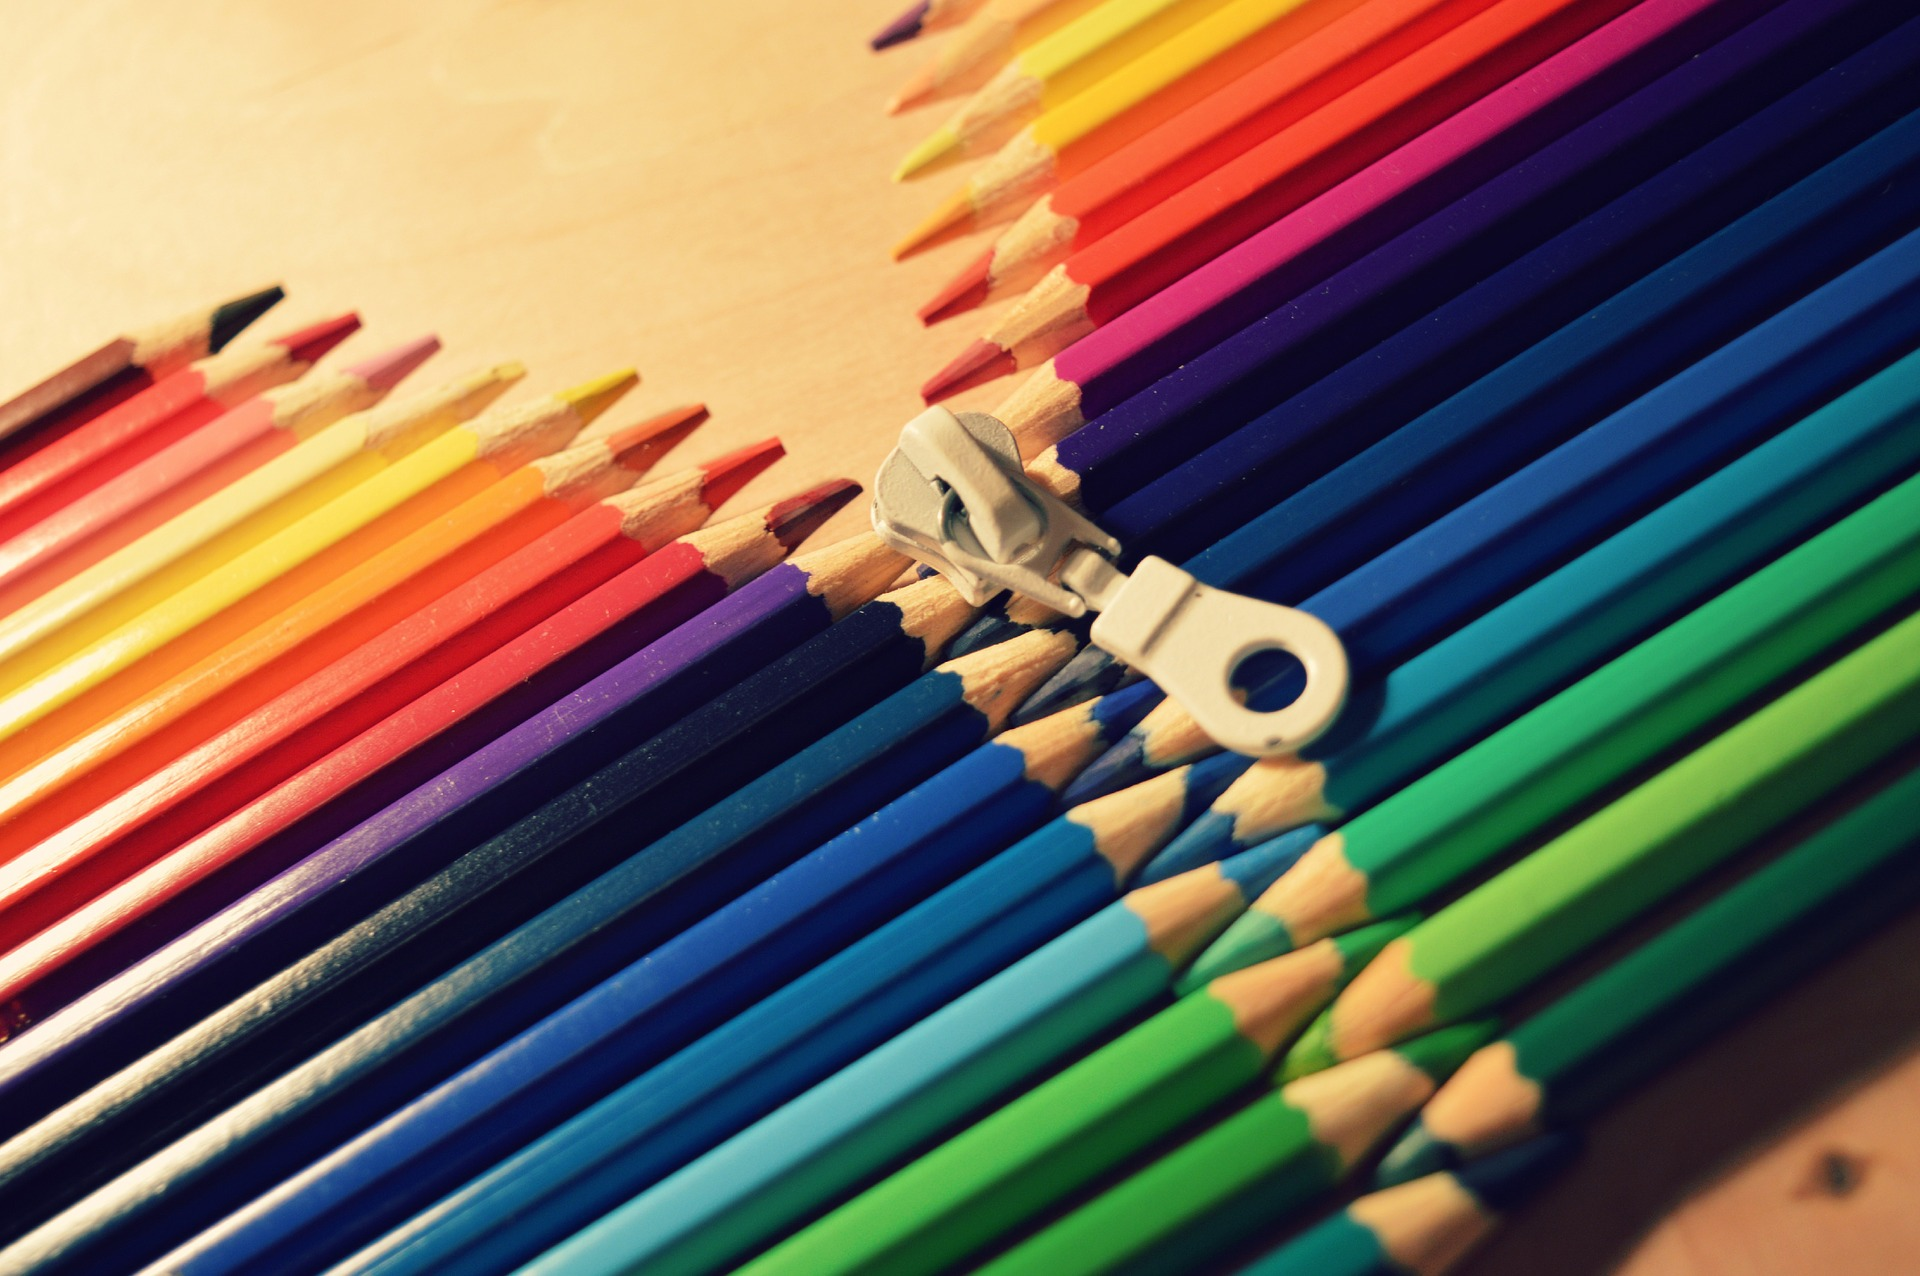 Coloured pencils